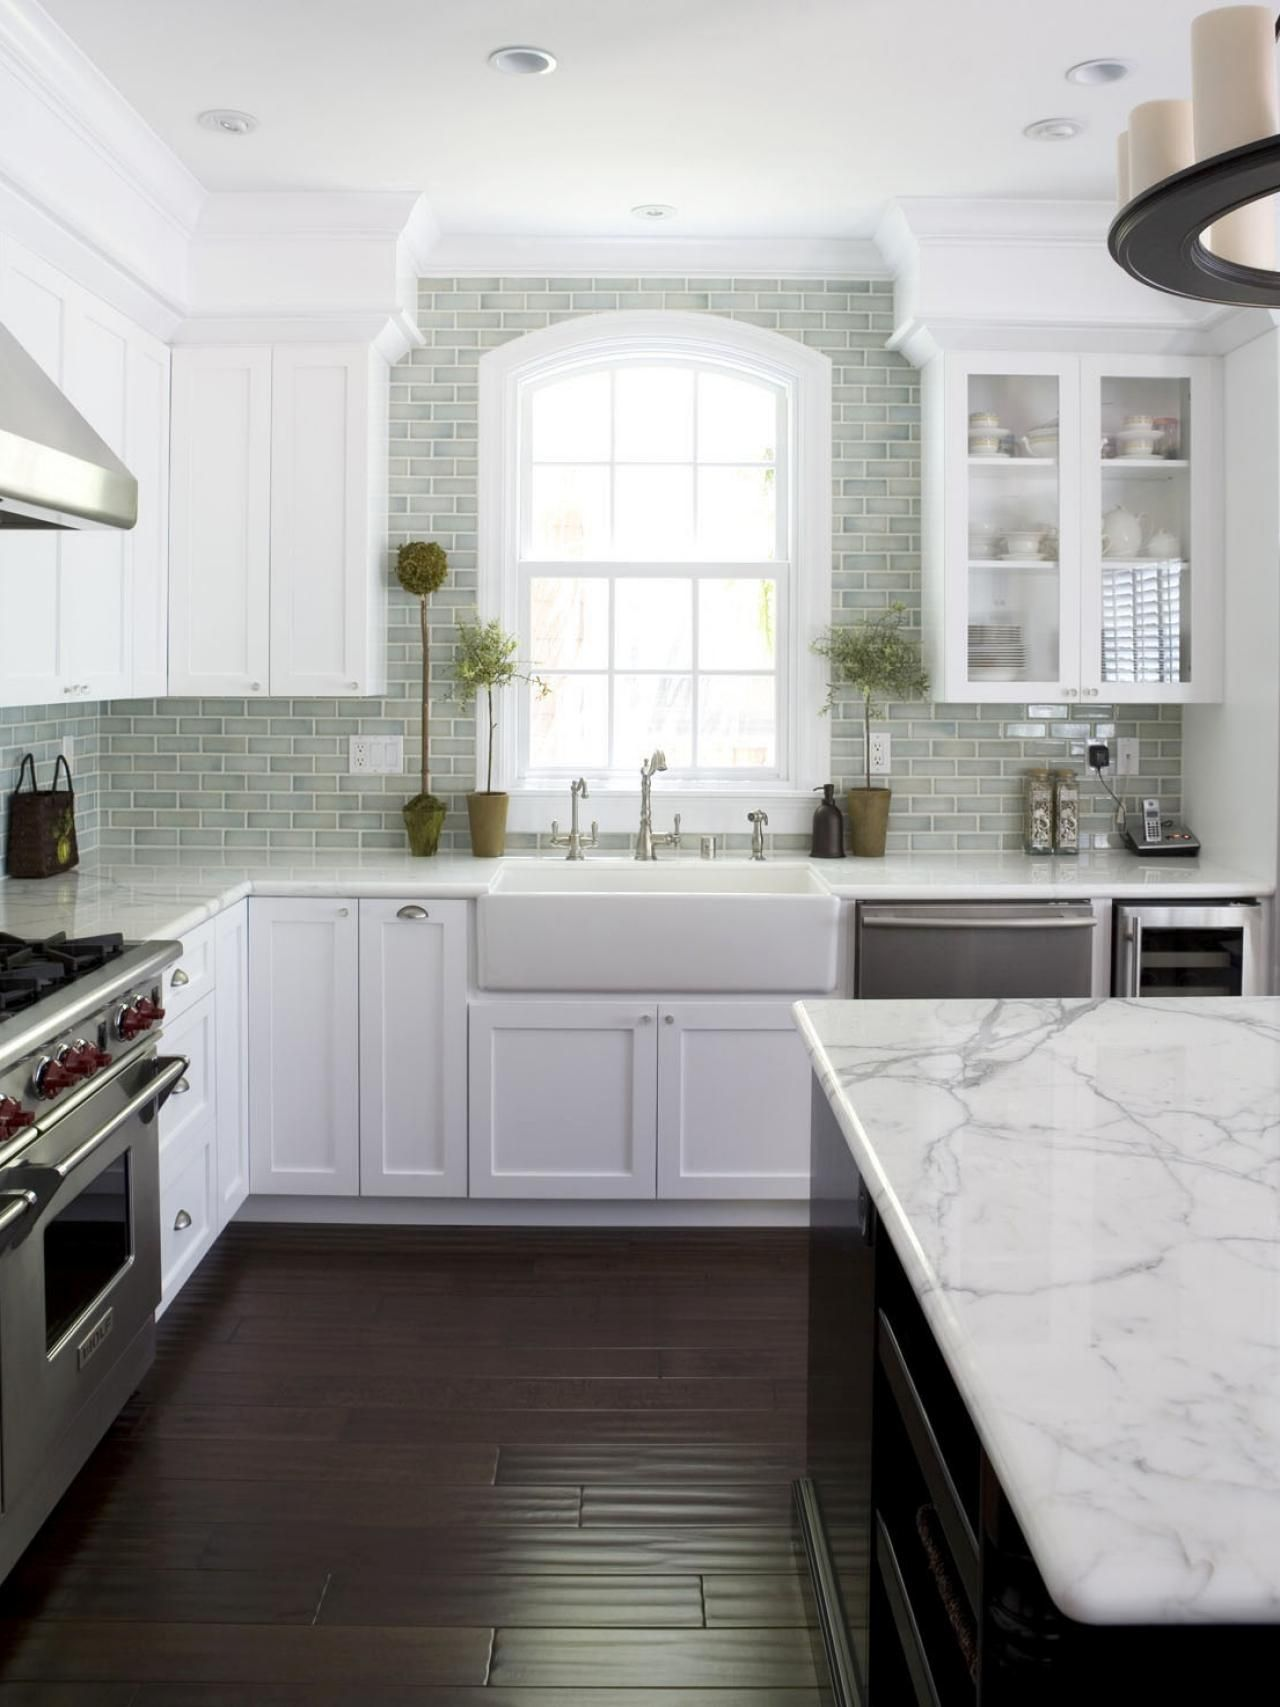 Marble Kitchen Flooring Our 55 Favorite White Kitchens Countertops Cabinets And Window